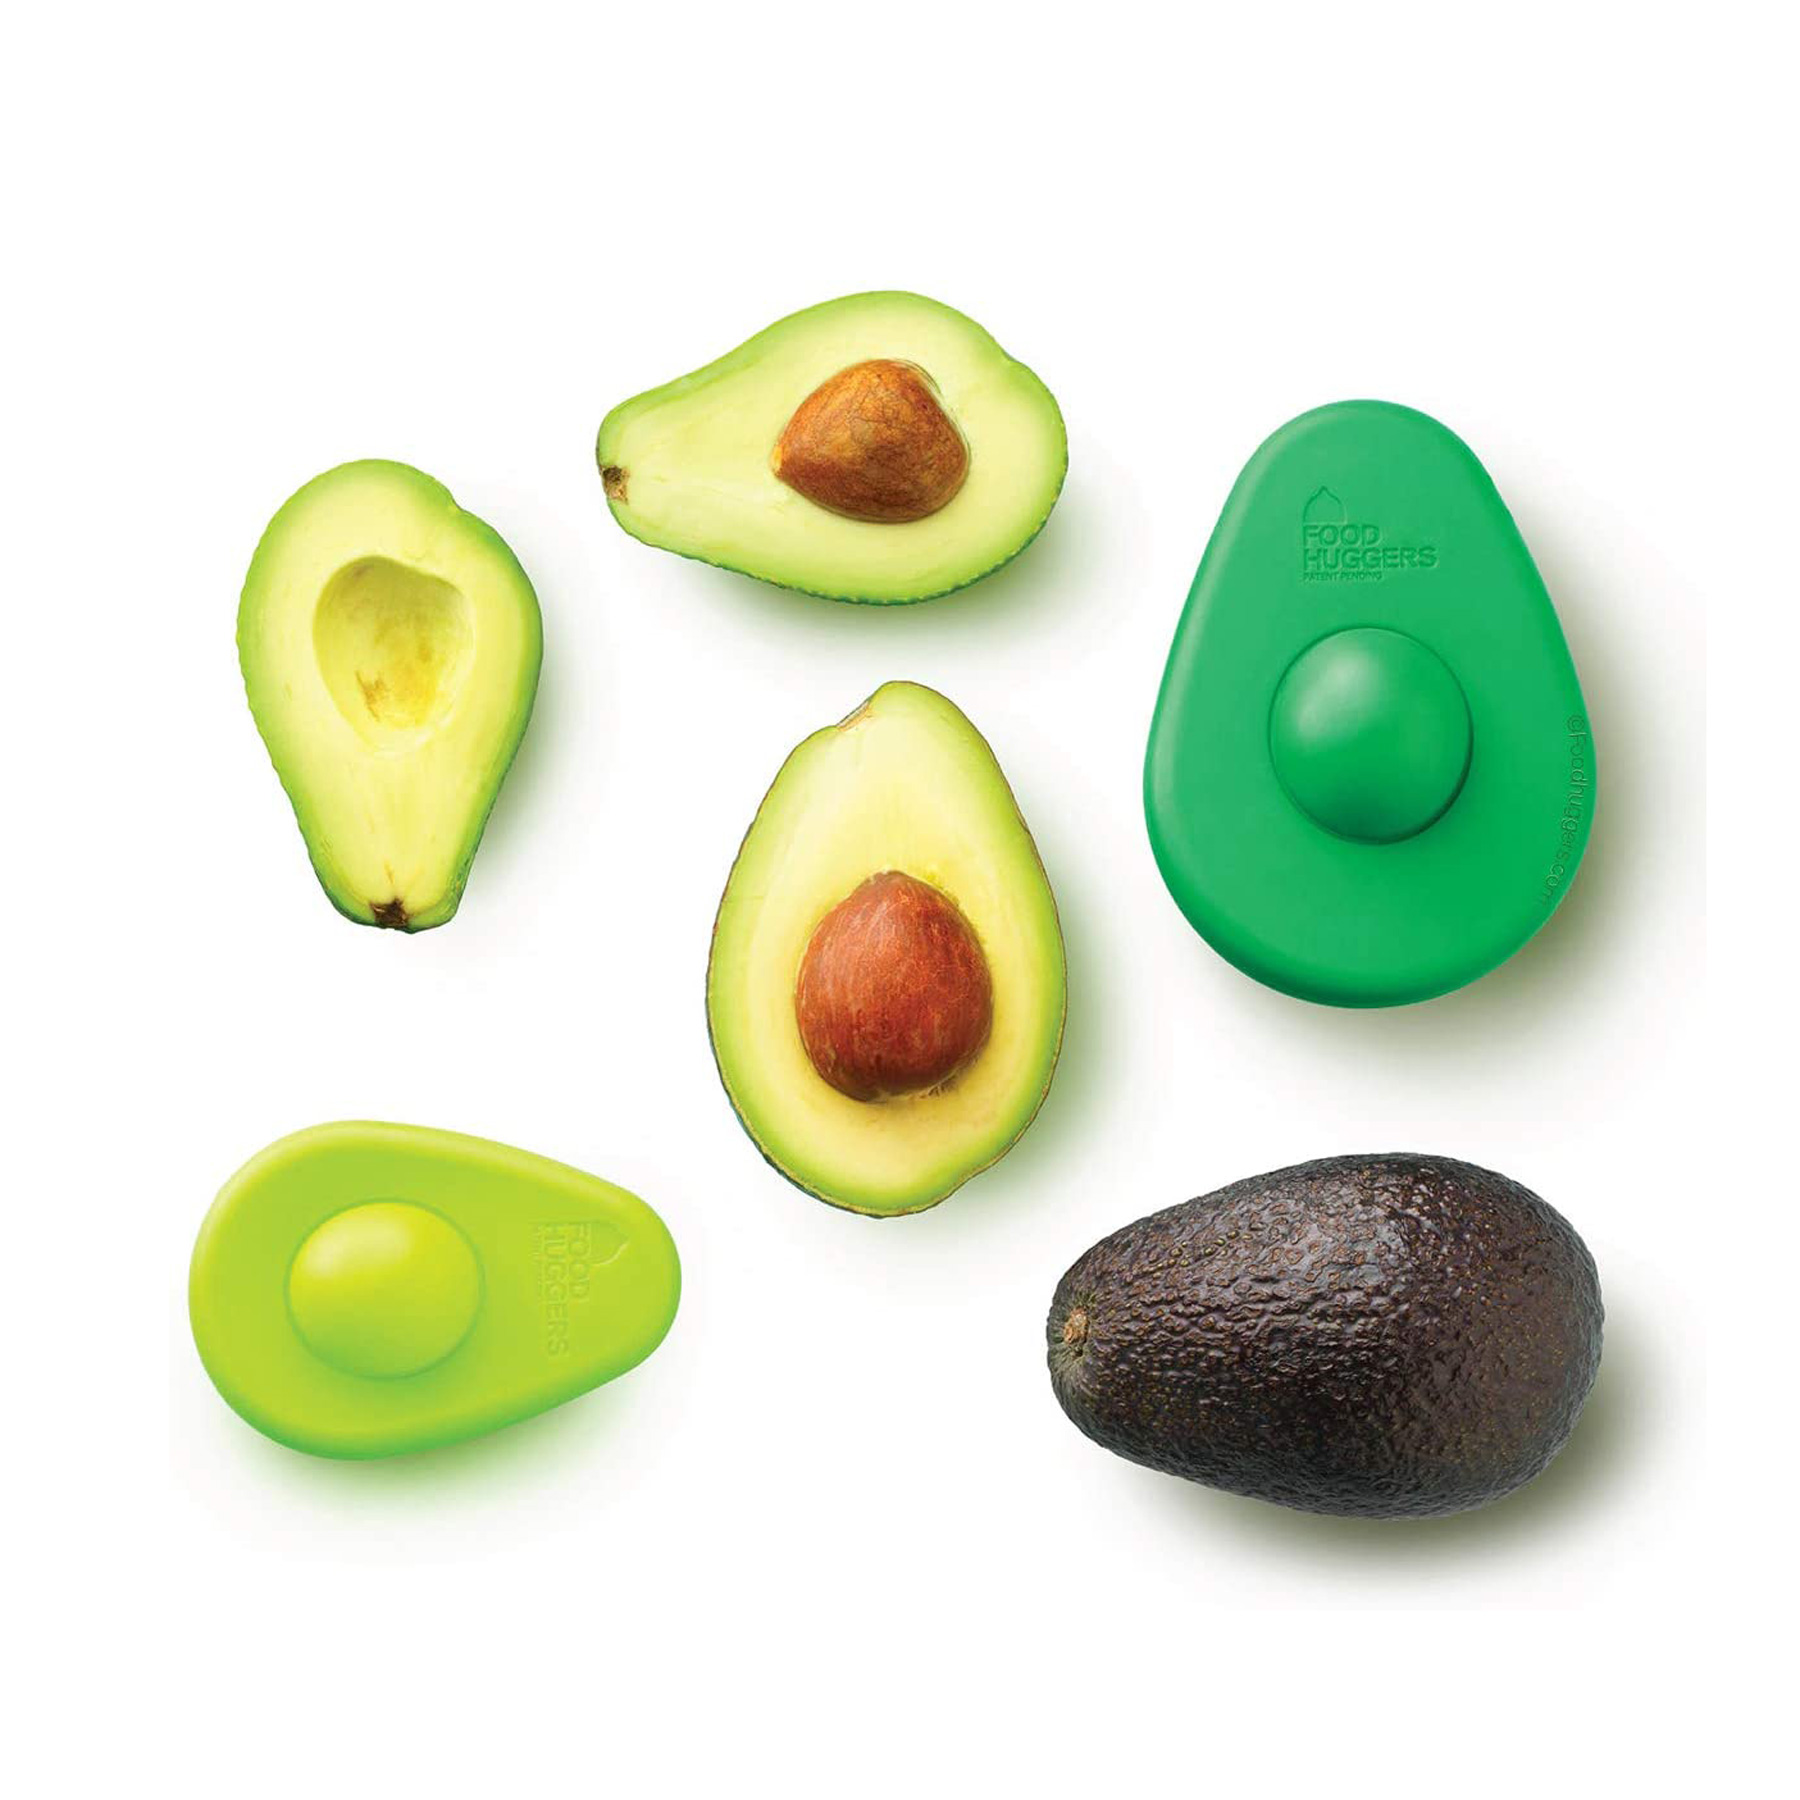 Cheap Christmas Gifts Under $25: Food Huggers Avocado Huggers silicone lids